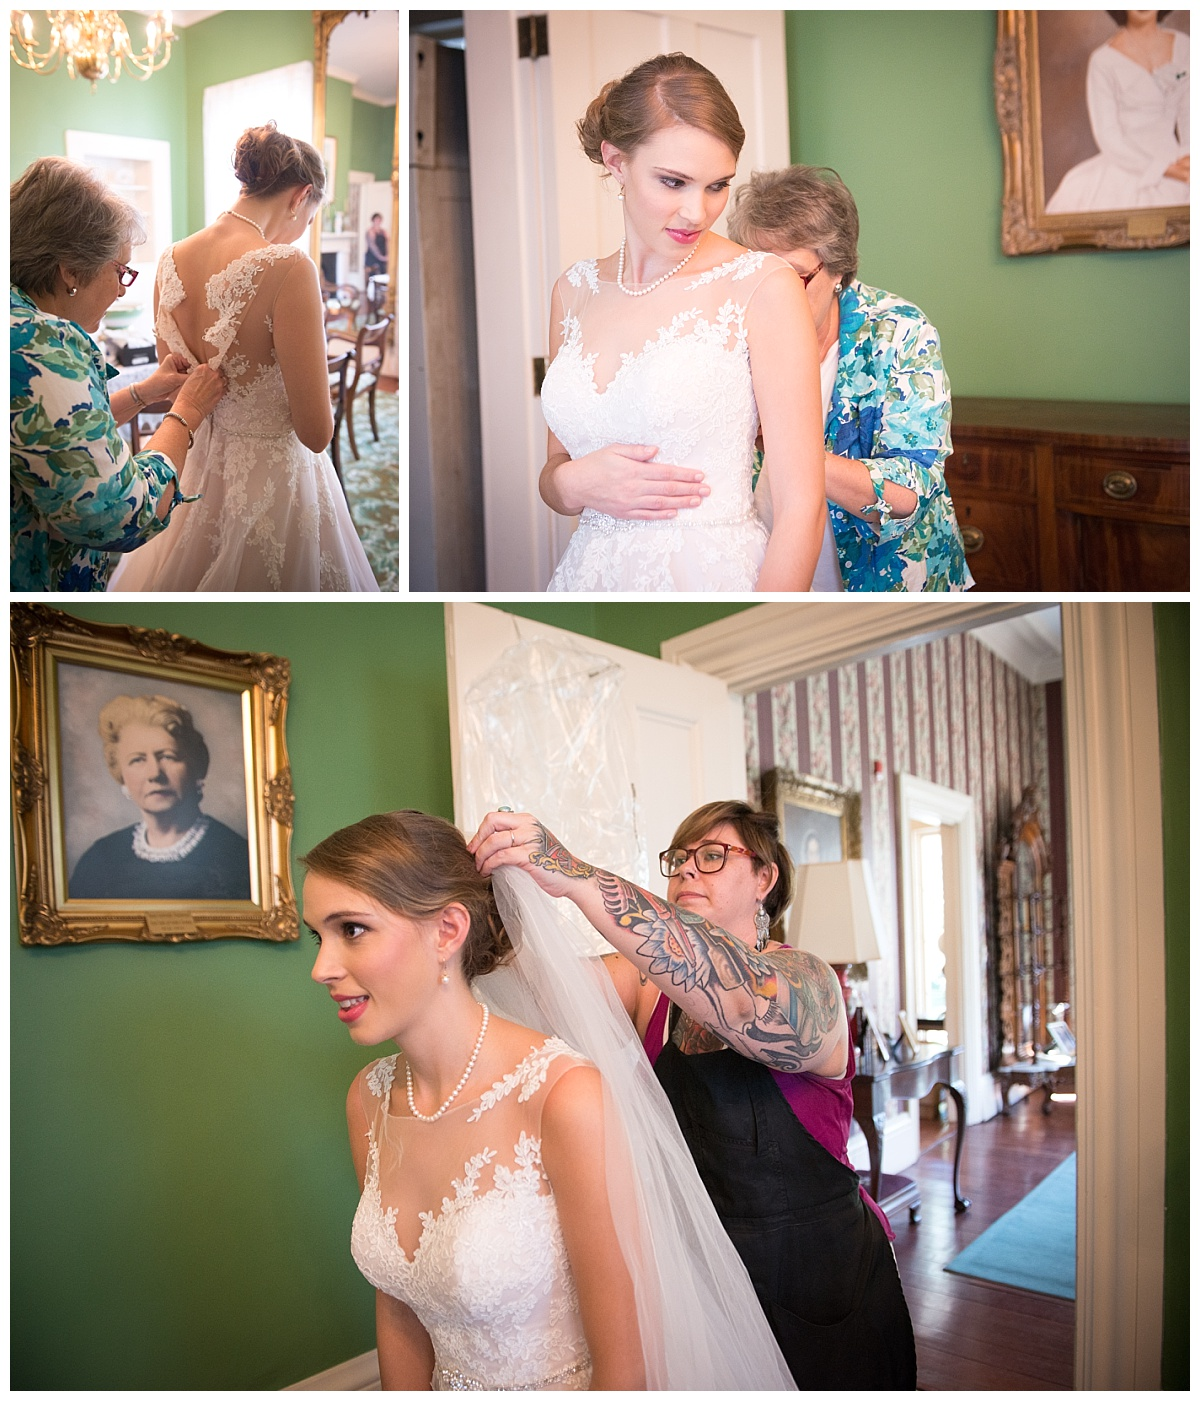 Bridal portraits at SC Governor's mansion grounds